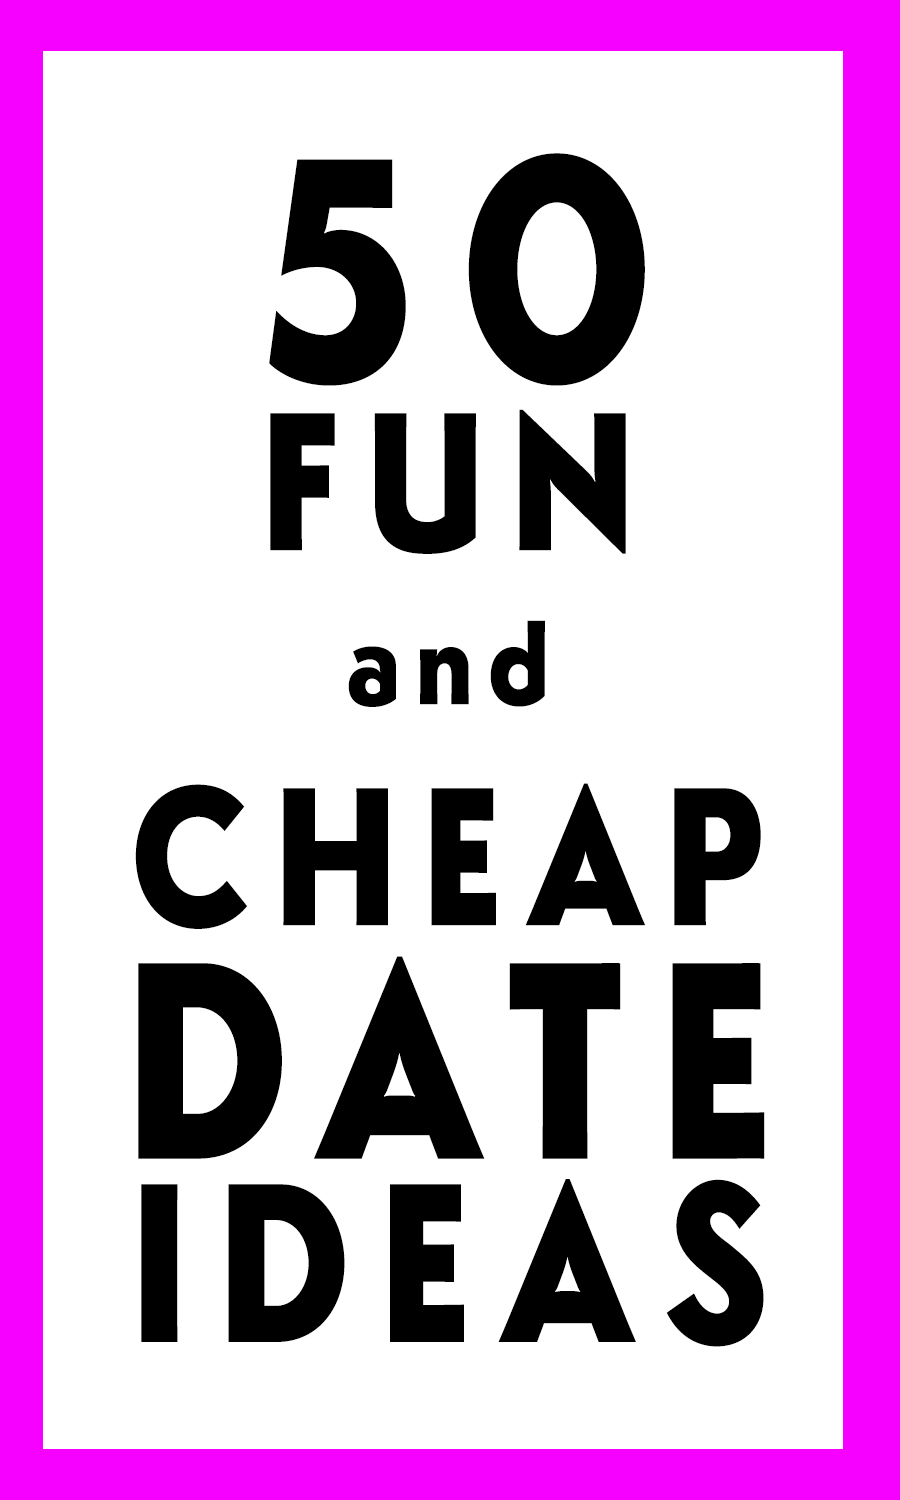 50 Cheap and Fun Date Ideas LDS Living